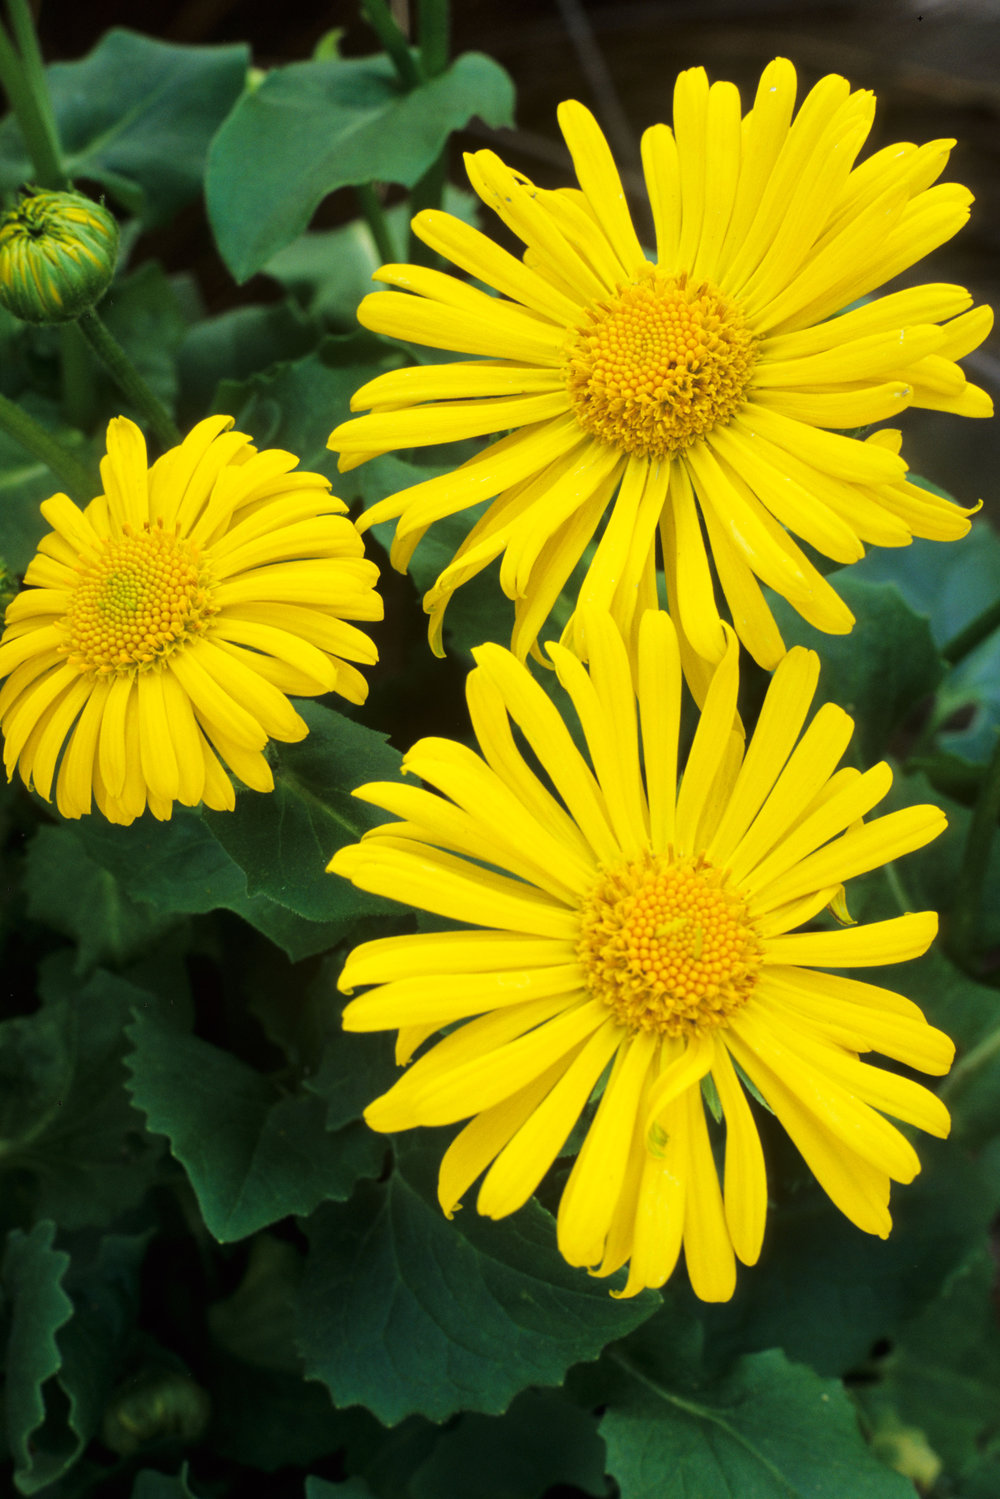 ALAMY_AN03G3 Doronicum.jpg